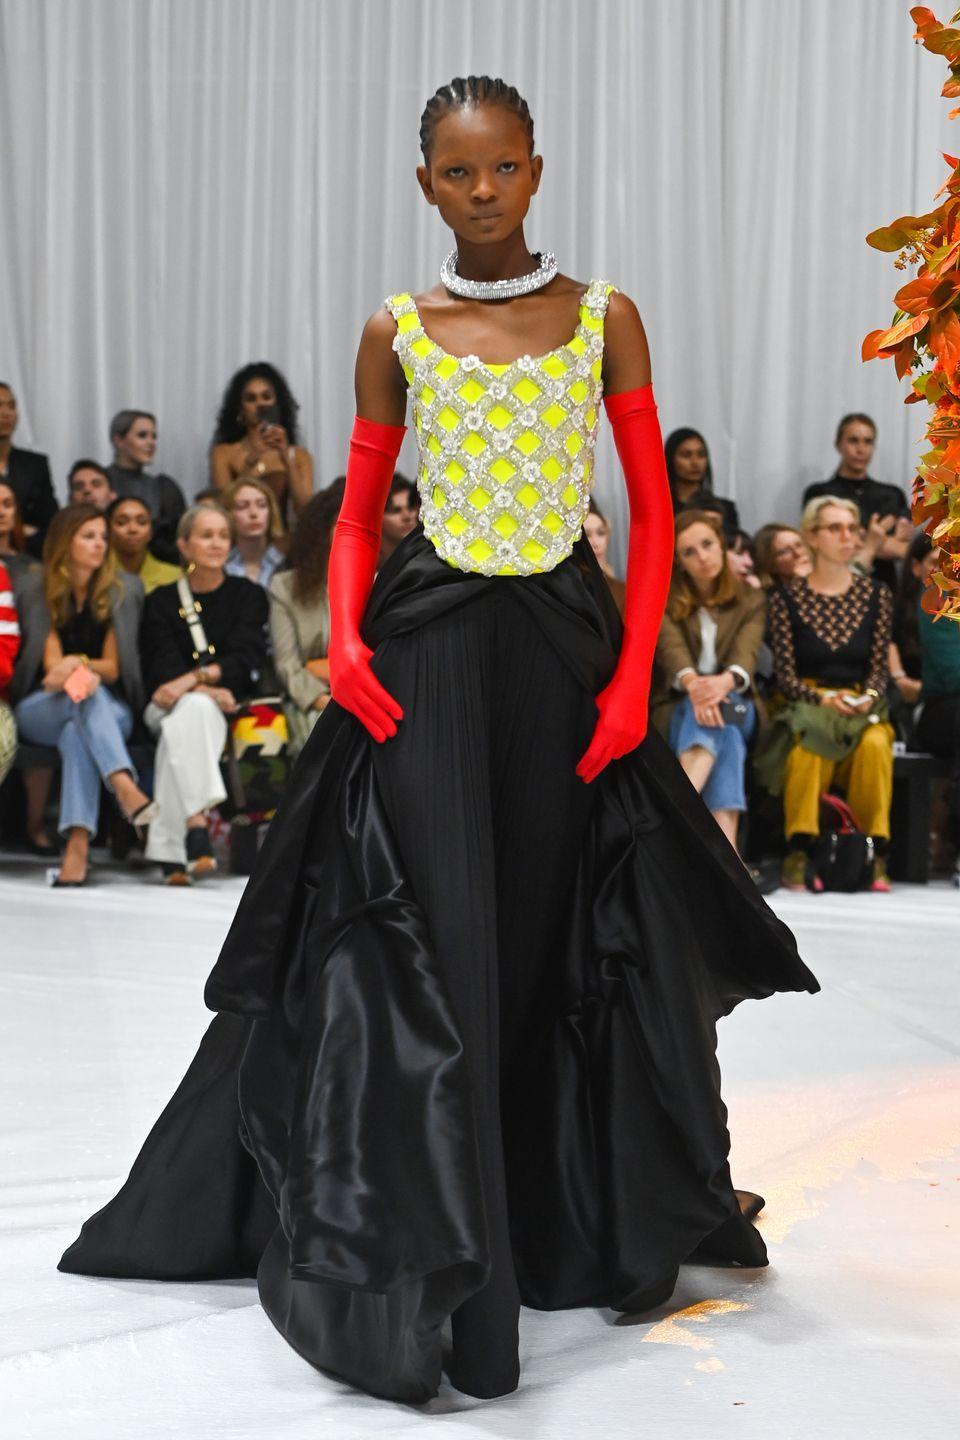 """<p>Richard Quinn closed London Fashion Week with a show and cocktail party at The Londoner, which drew in an A-list crowd, including <a href=""""https://www.harpersbazaar.com/uk/fashion/fashion-news/a37686524/kate-moss-lila-richard-quinn/"""" rel=""""nofollow noopener"""" target=""""_blank"""" data-ylk=""""slk:supermodel Kate Moss, who was on hand to support her daughter Lila on the catwalk"""" class=""""link rapid-noclick-resp"""">supermodel Kate Moss, who was on hand to support her daughter Lila on the catwalk</a>. The show, which marked Quinn's return to the catwalk after lockdown and his first since February 2020, was an emotional one for the designer. Describing the collection as a contrast between """"tension and calm"""", it was filled with many of the eccentric prints and over-the-top silhouettes that he has become so well known for, and which are always a favourite on the red carpet.</p>"""